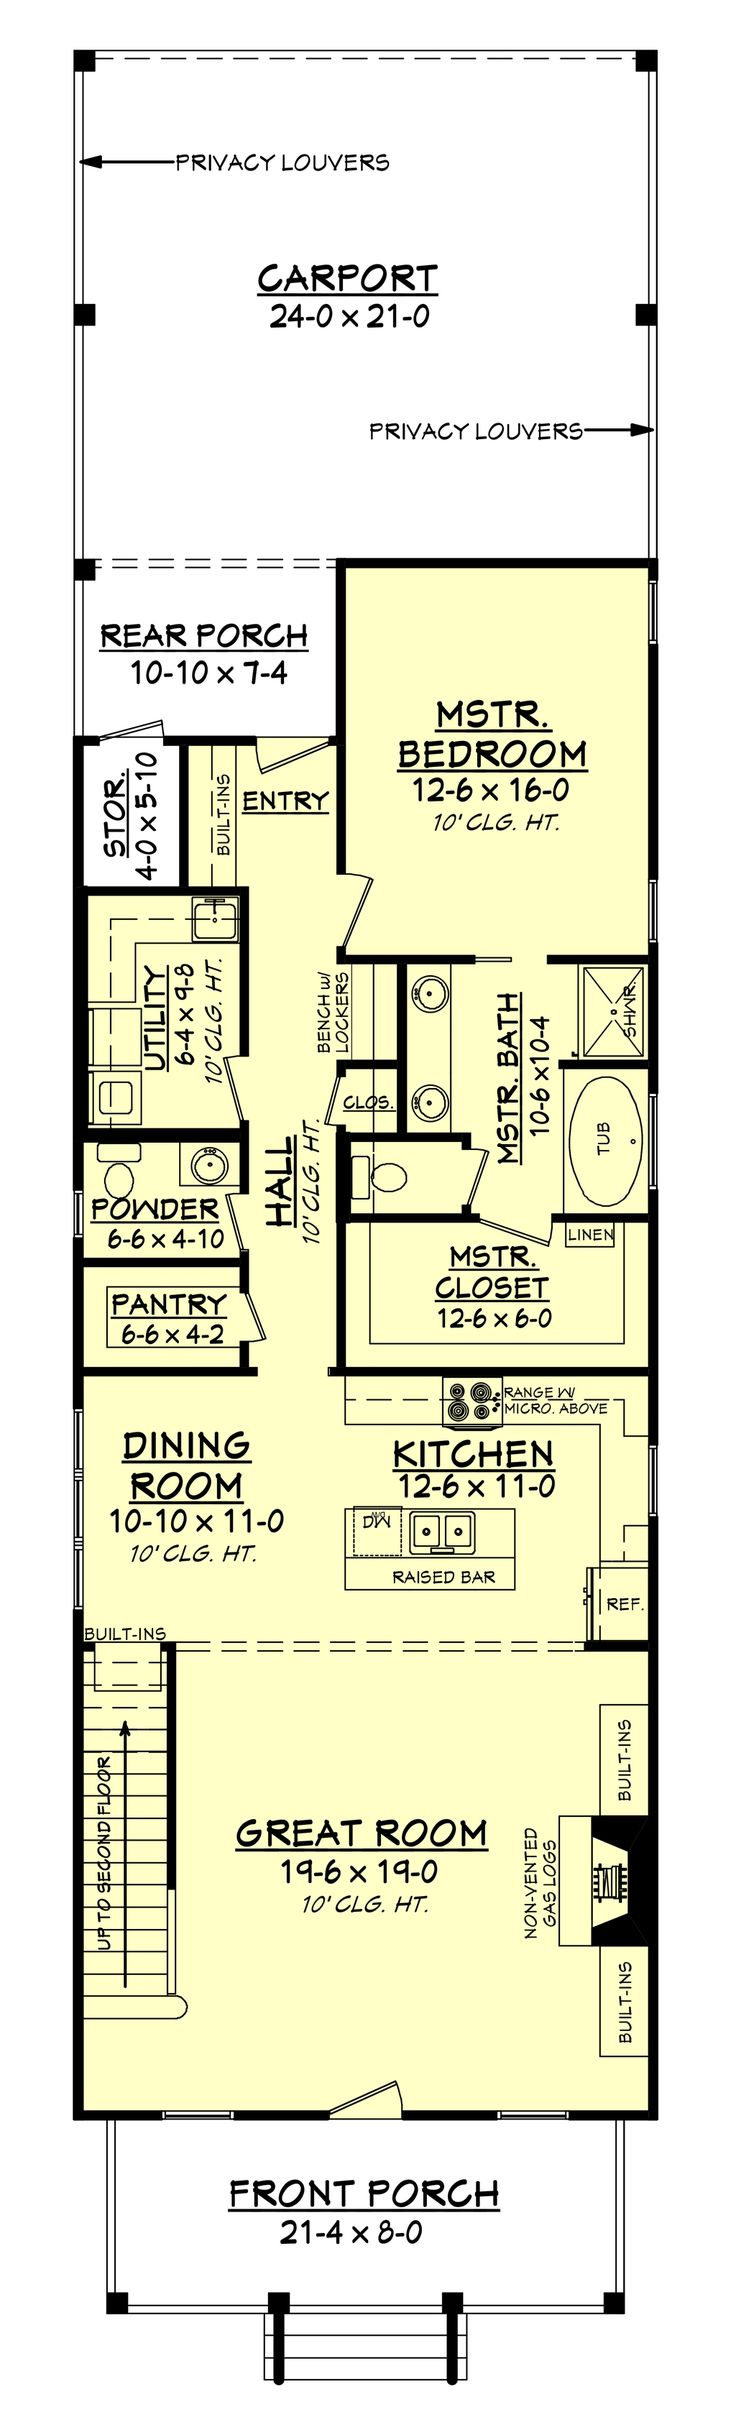 cottage style house plan 4 beds 25 baths 2172 sqft plan 430 - Small Cottage House Plans